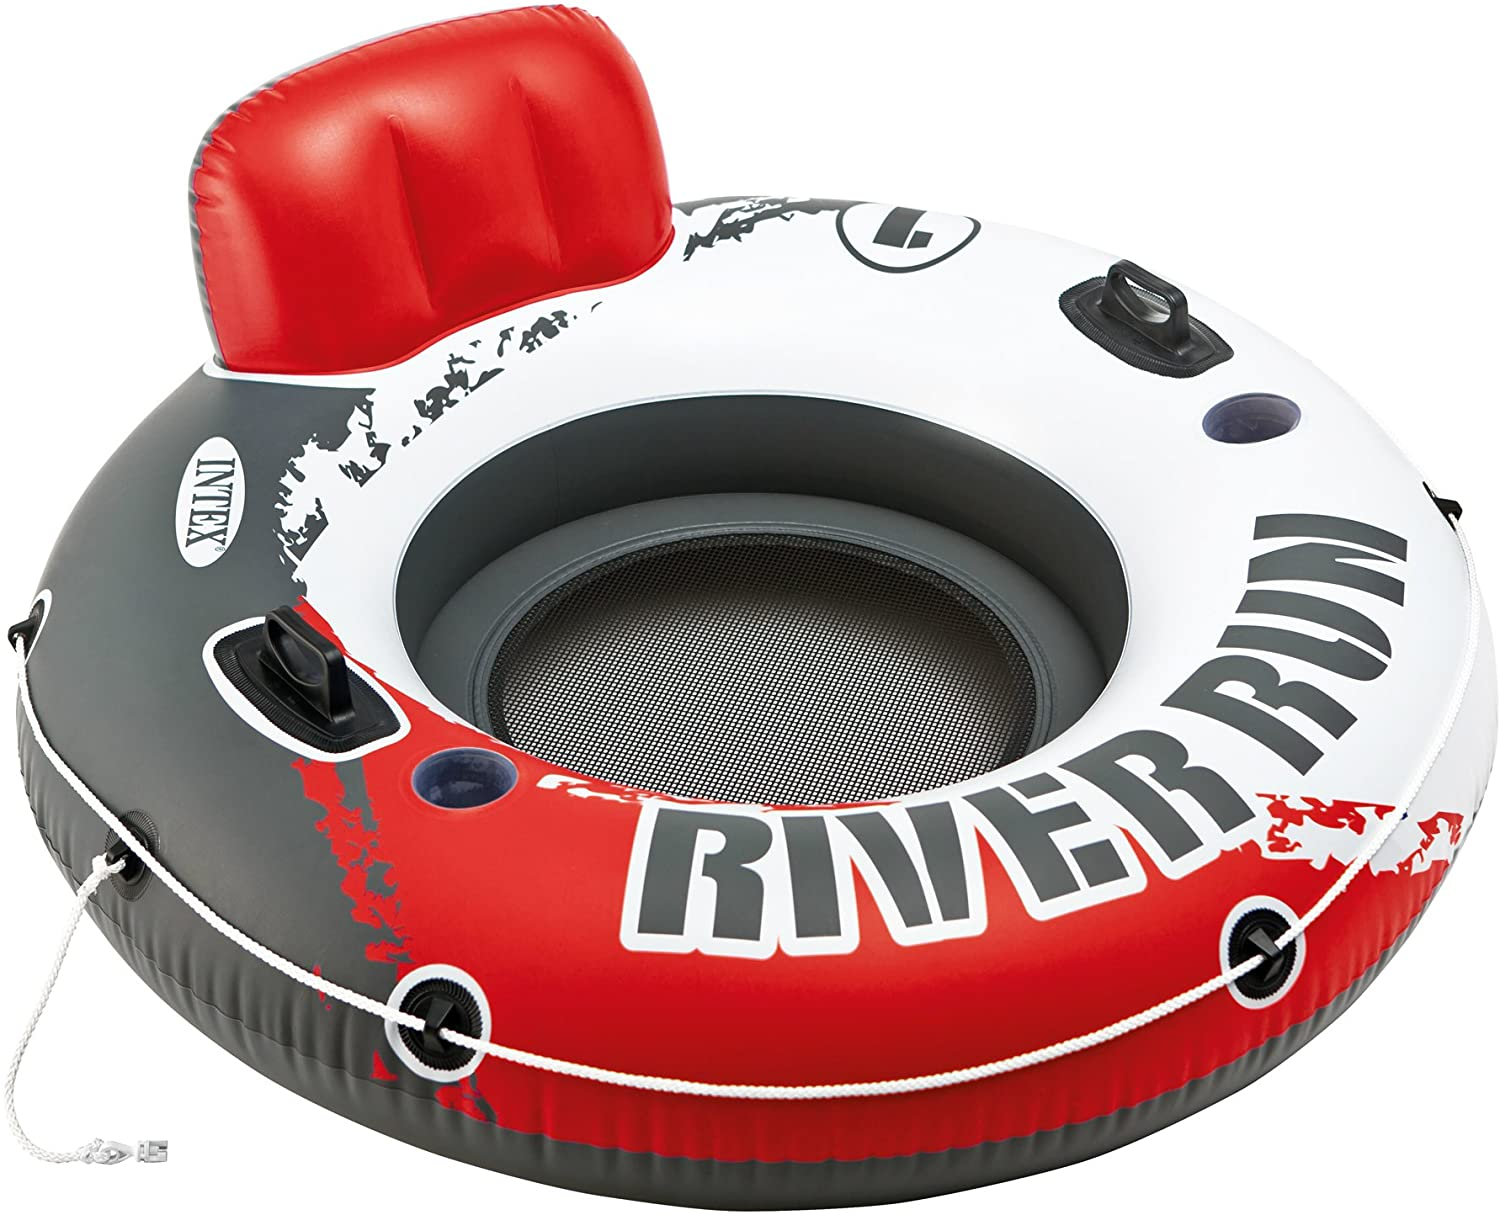 Intex Red River Run Fire Edition Sports Water Tow